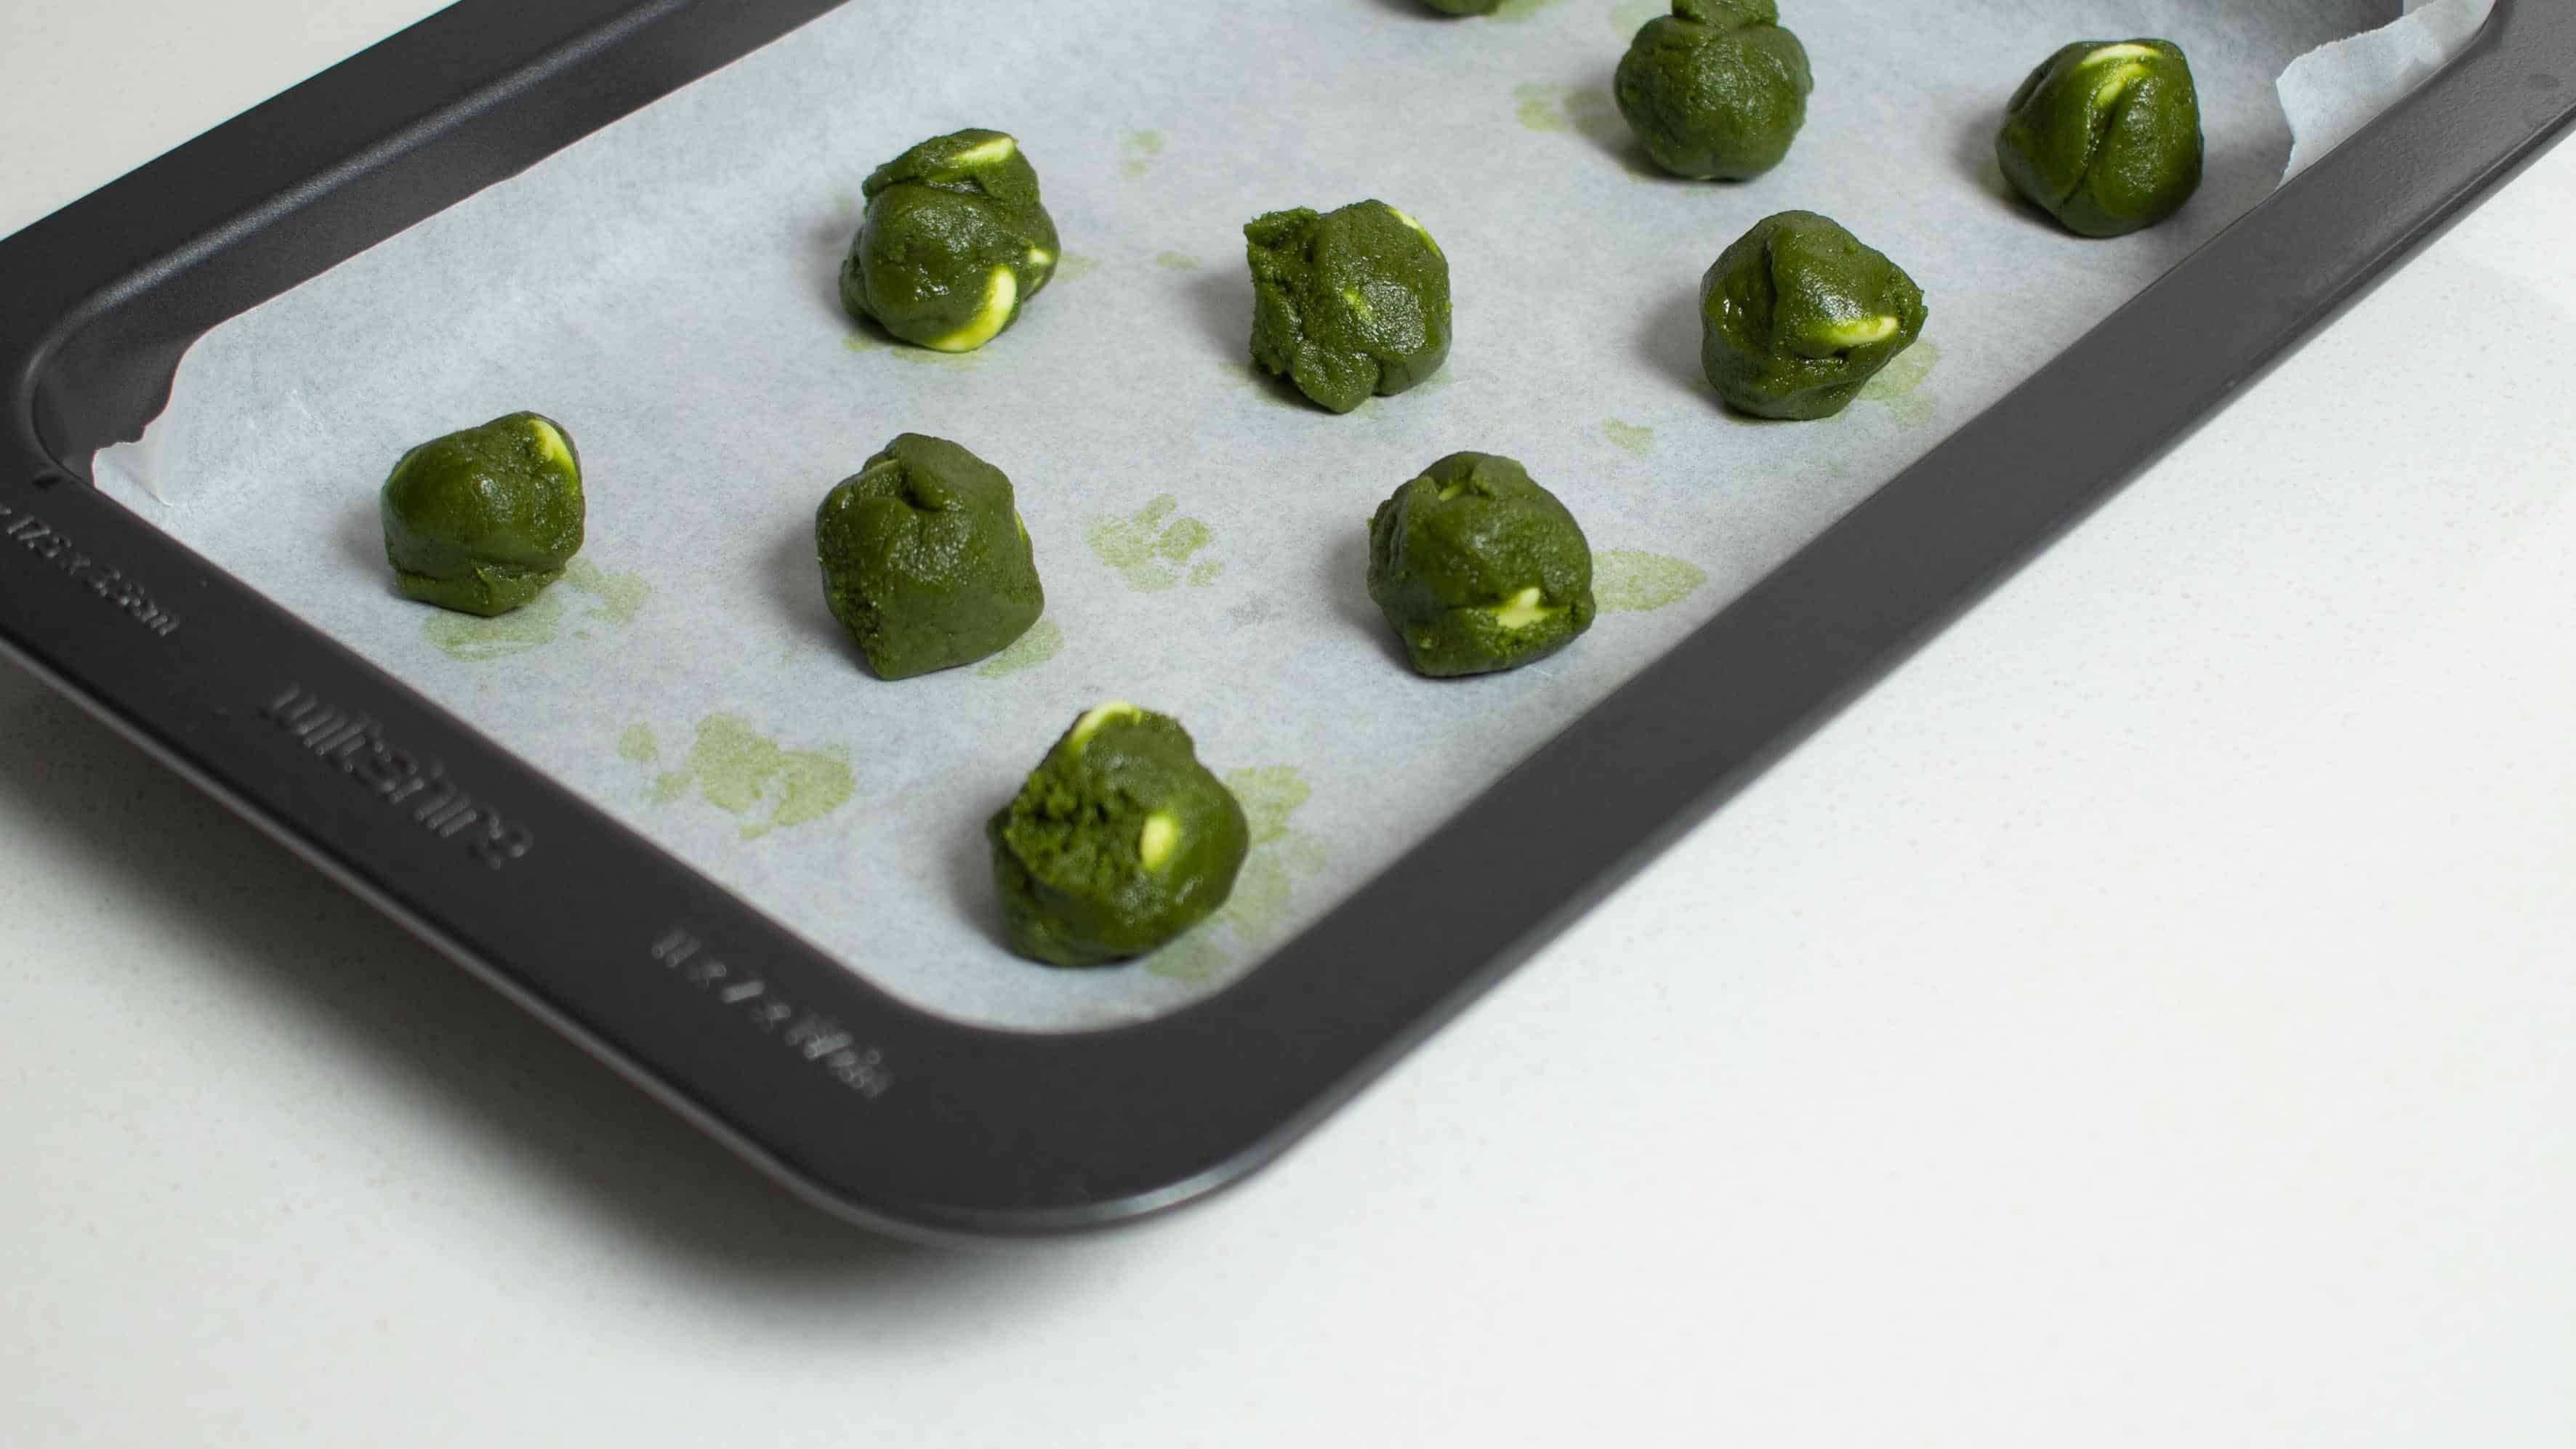 Matcha green tea cookie dough on tray for baking